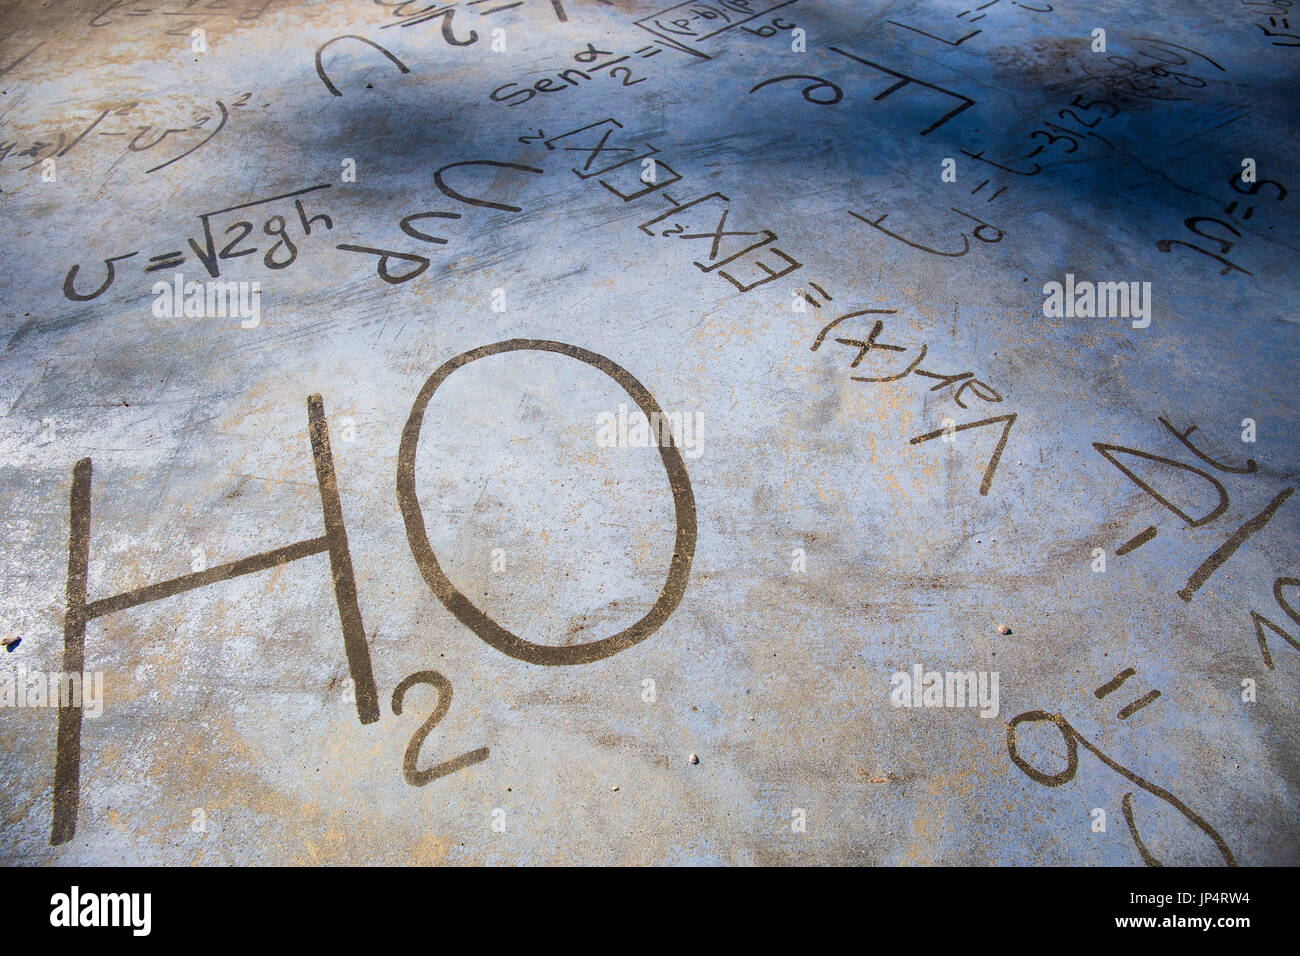 H2o chemical symbol stock photos h2o chemical symbol stock images chemical equations on a stone pavement h2o stock image buycottarizona Choice Image